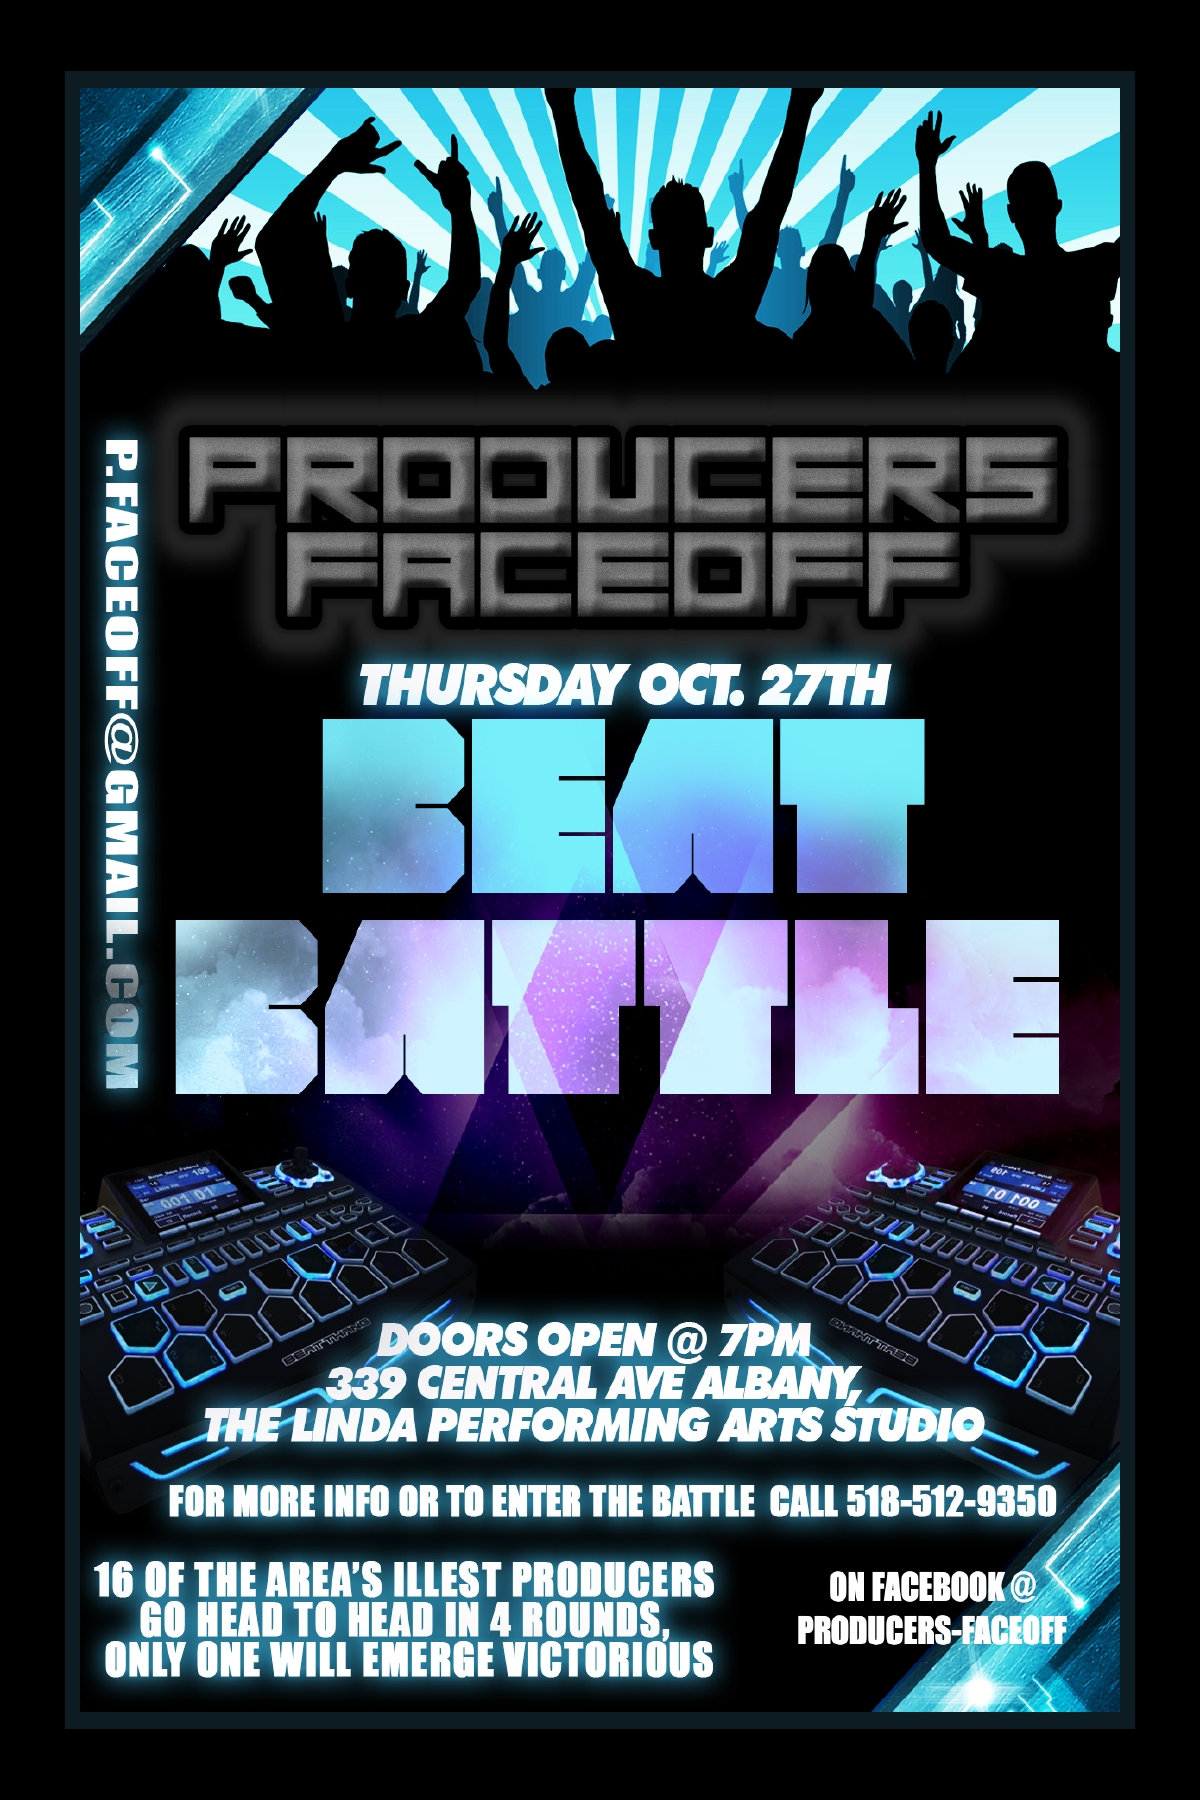 Producers Faceoff